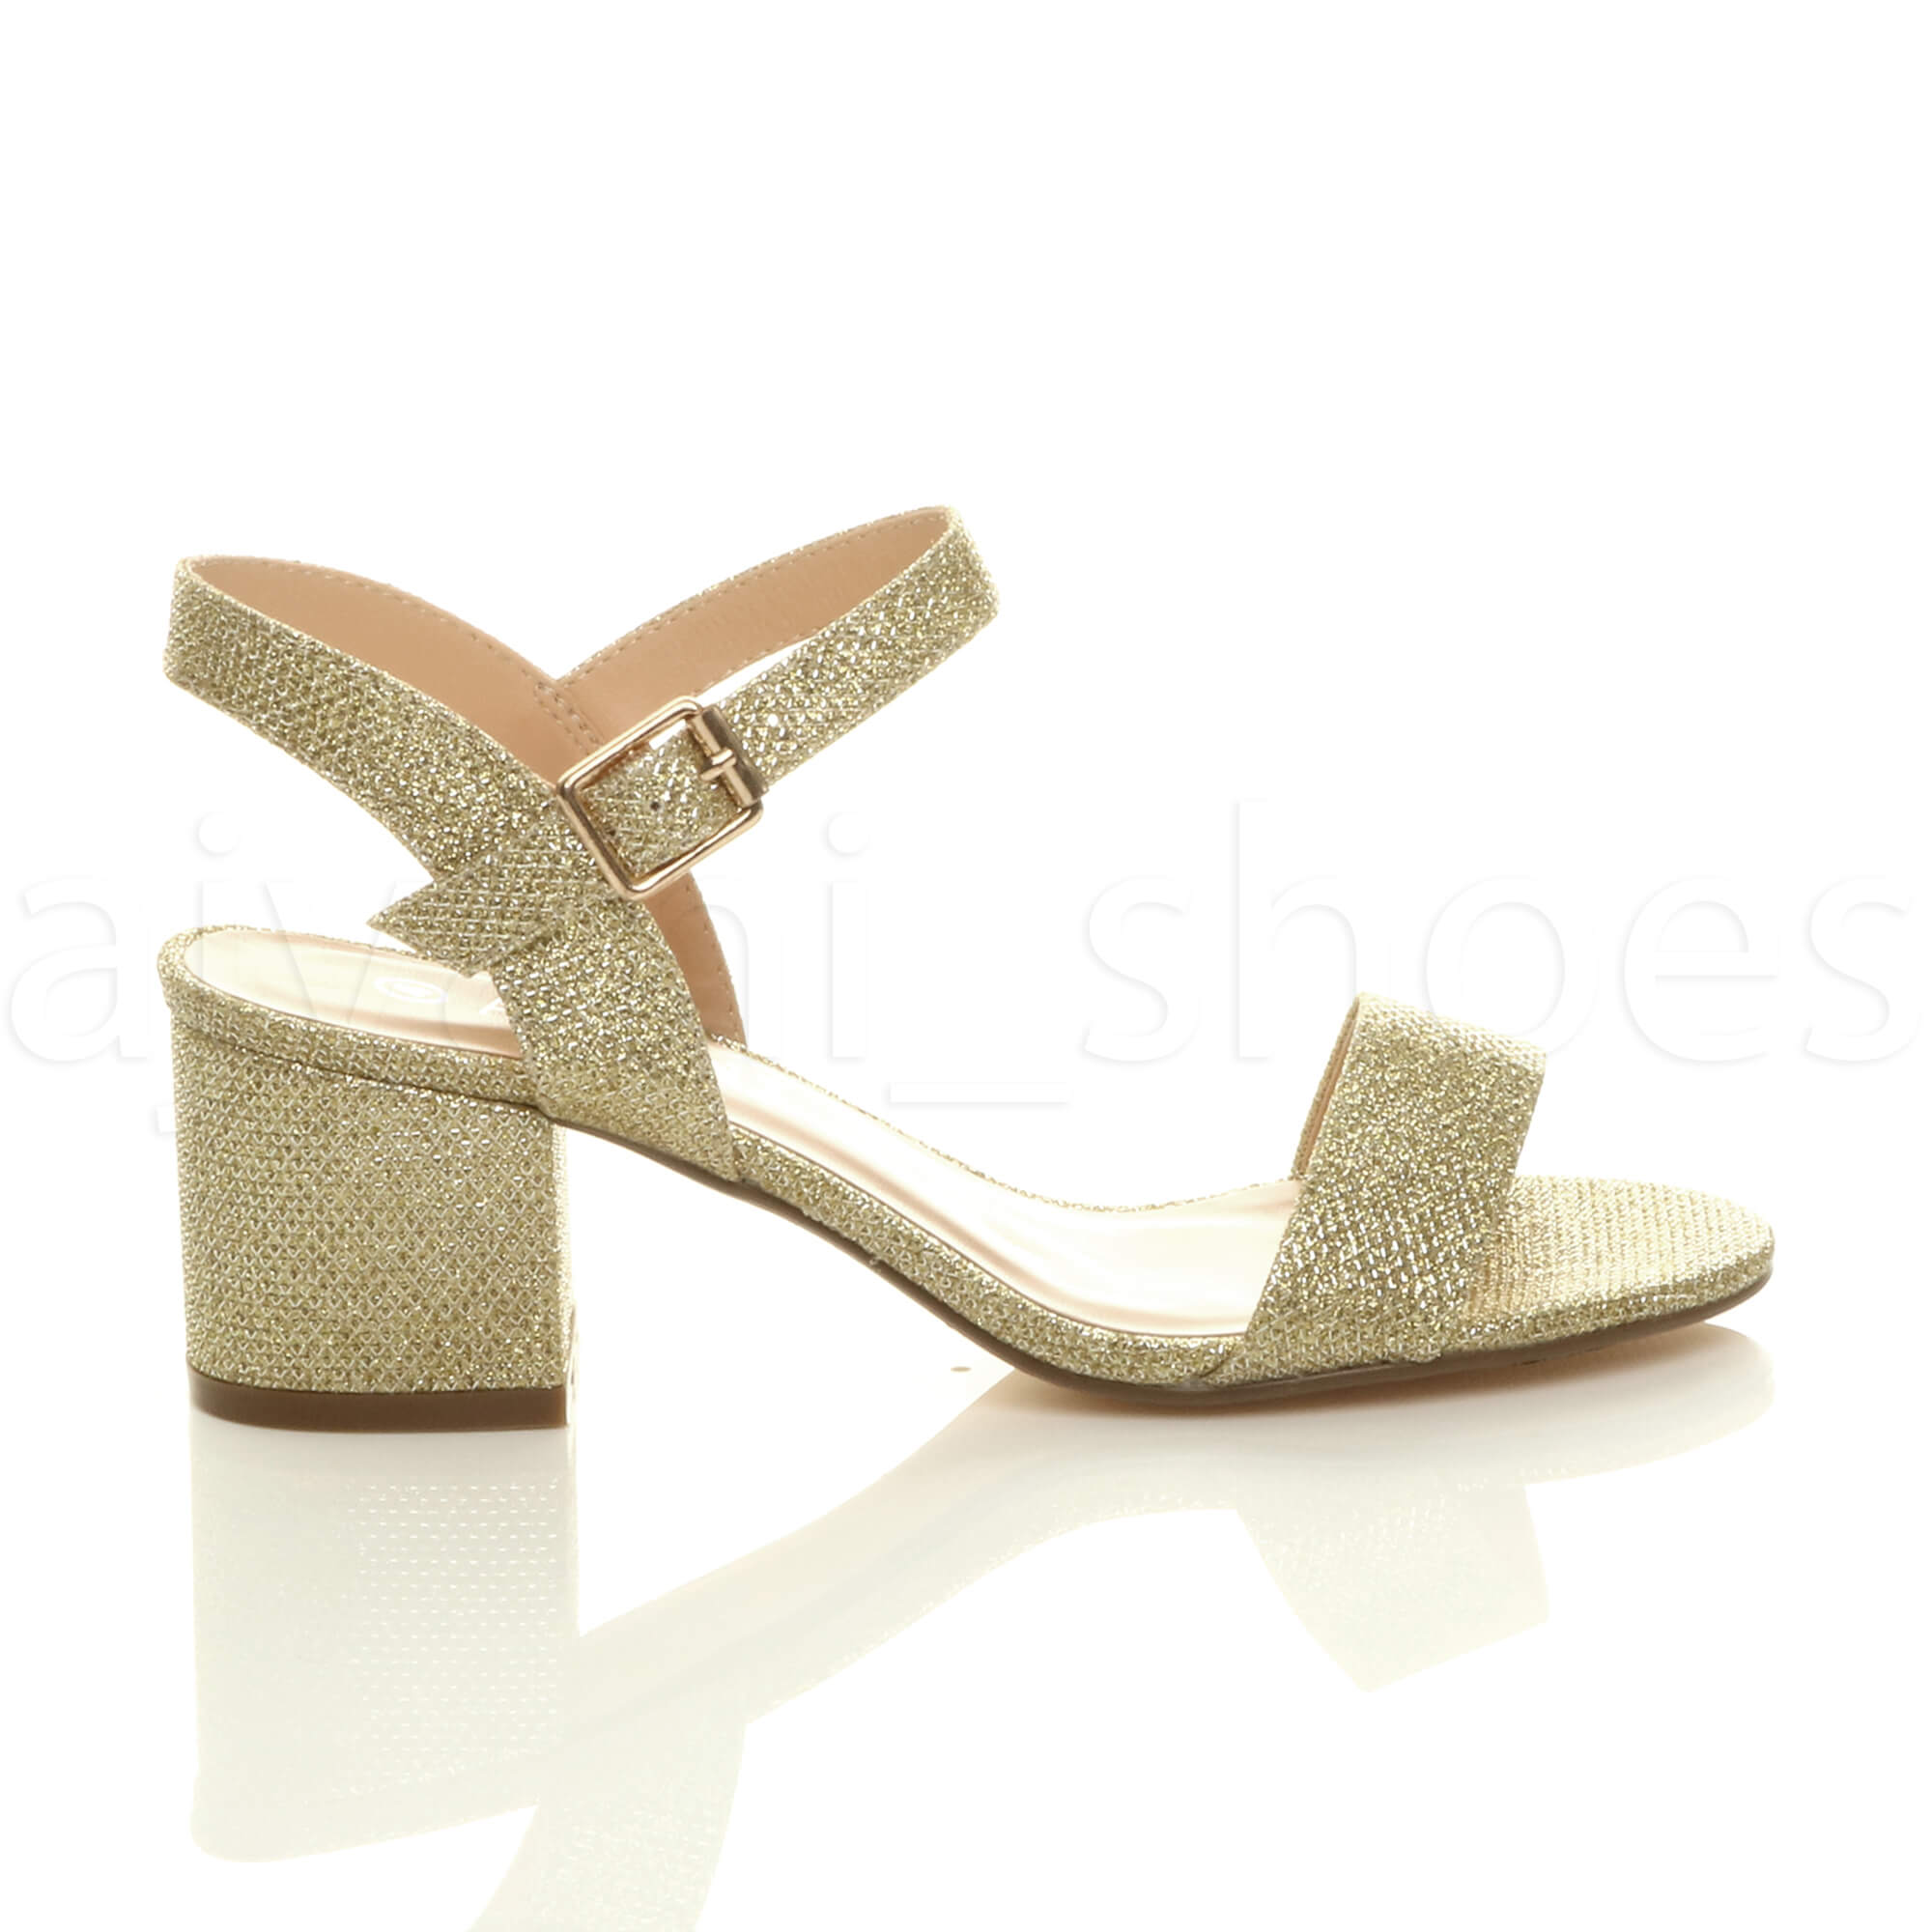 WOMENS-LADIES-MID-LOW-BLOCK-HEEL-PEEP-TOE-ANKLE-STRAP-STRAPPY-PARTY-SANDALS-SIZE thumbnail 51